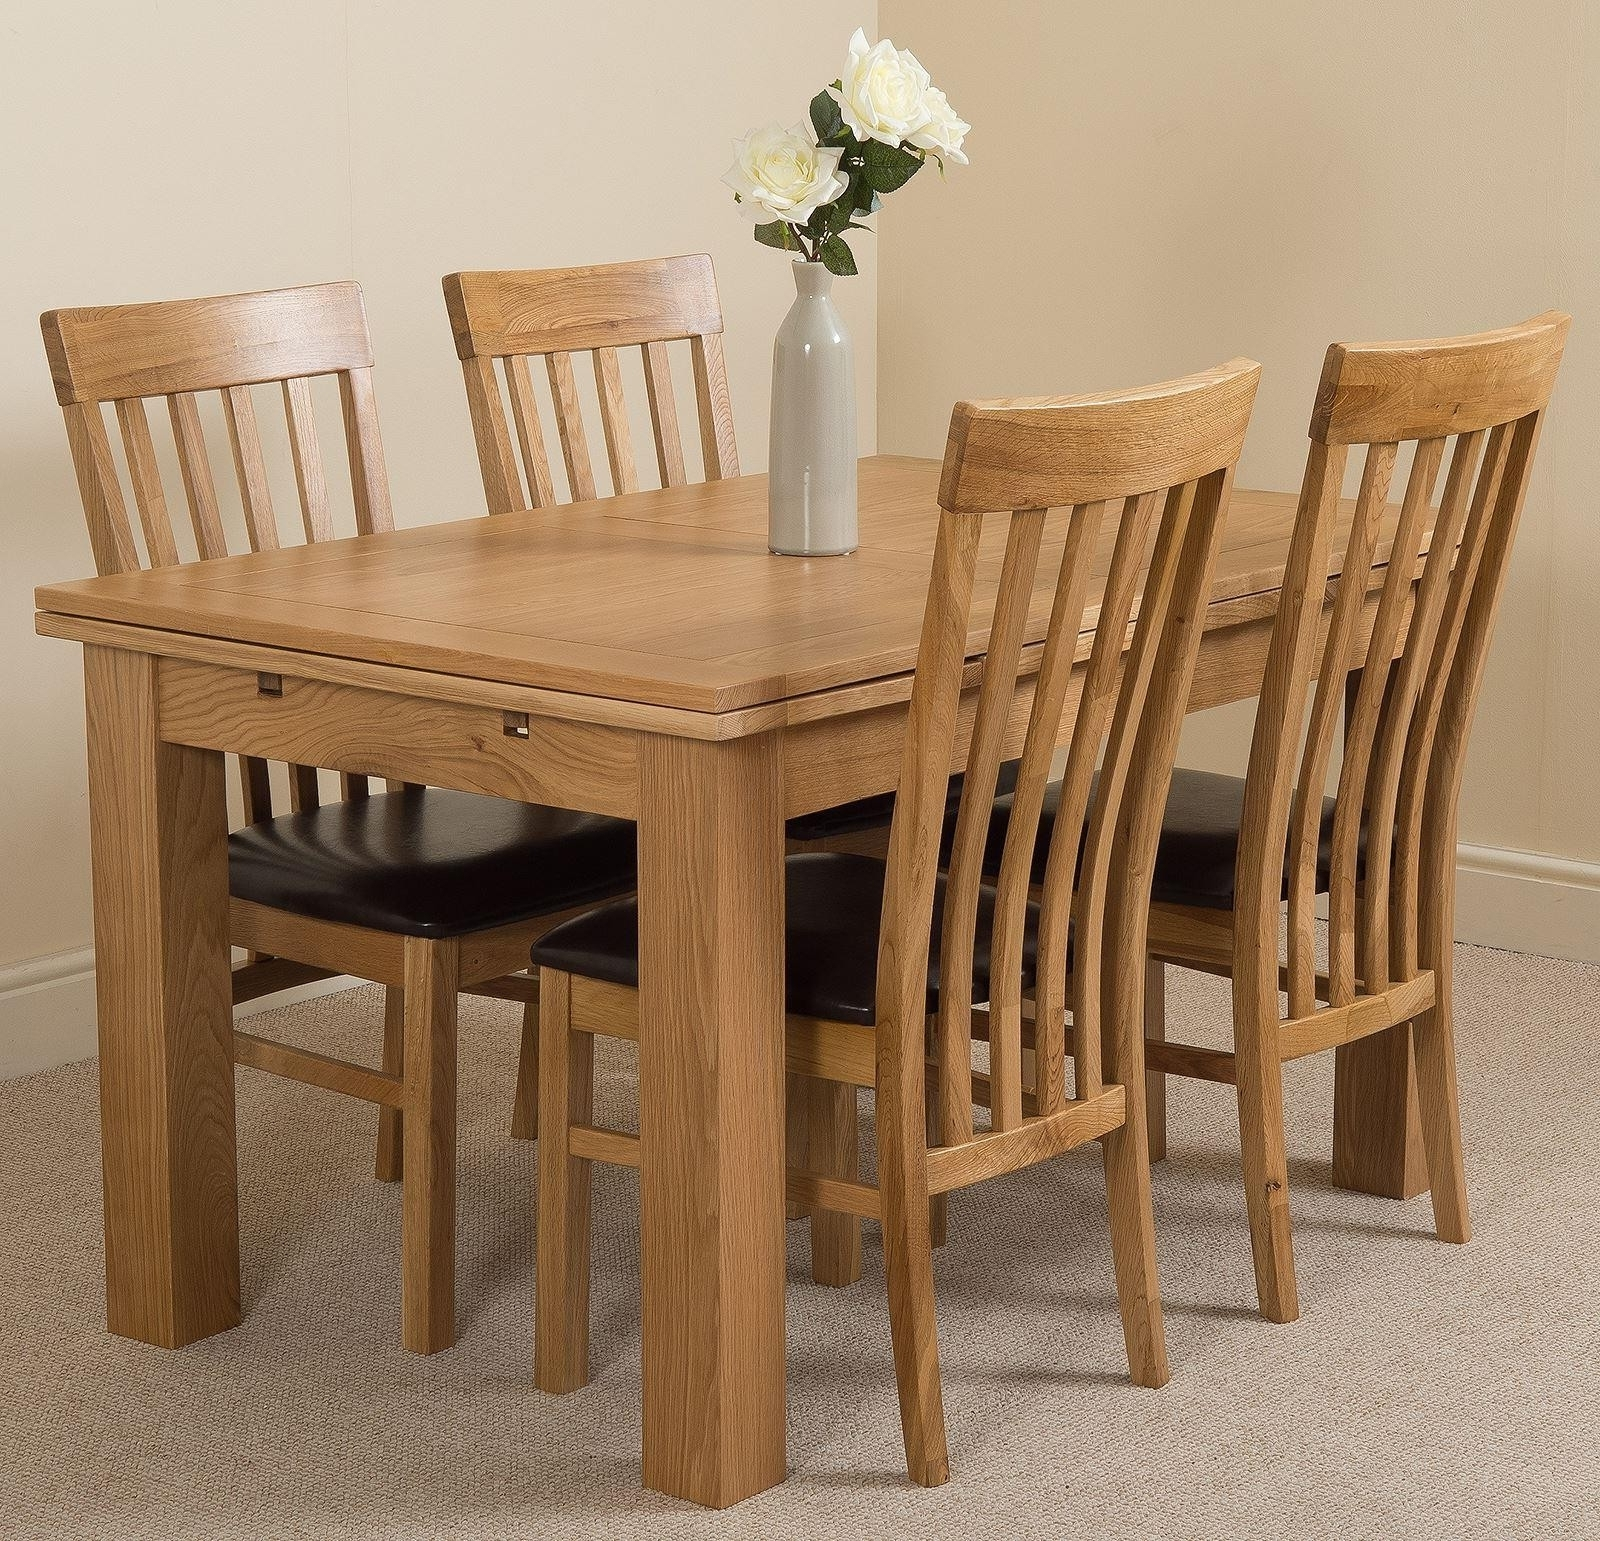 Oak Dining Tables And Chairs Within 2018 Richmond Oak Small Dining Set 4 Harvard Chairs (View 20 of 25)